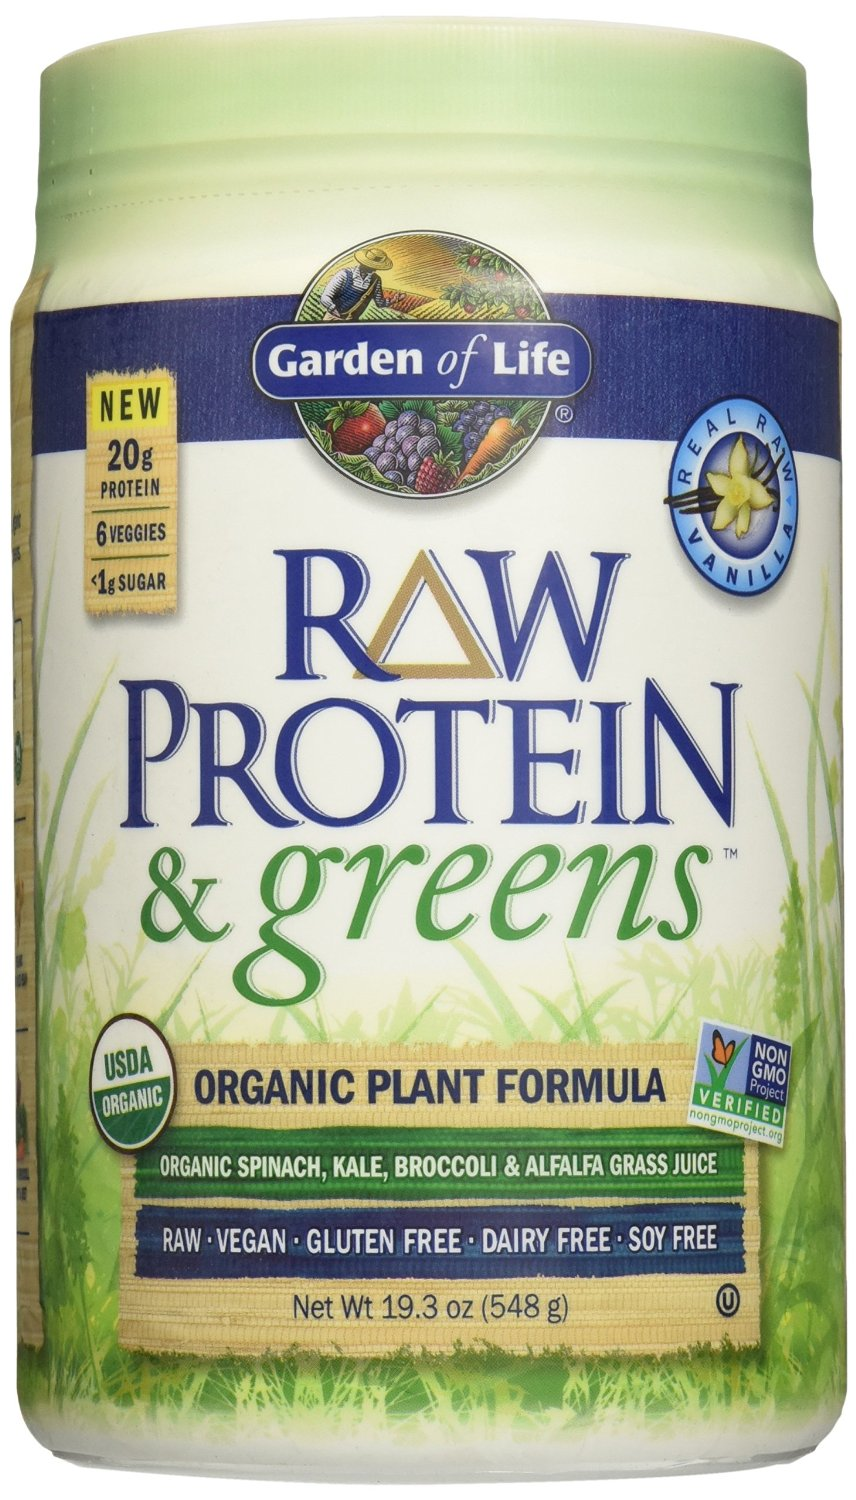 The Vegan Protein Powder Review Garden of Life RAW Protein and